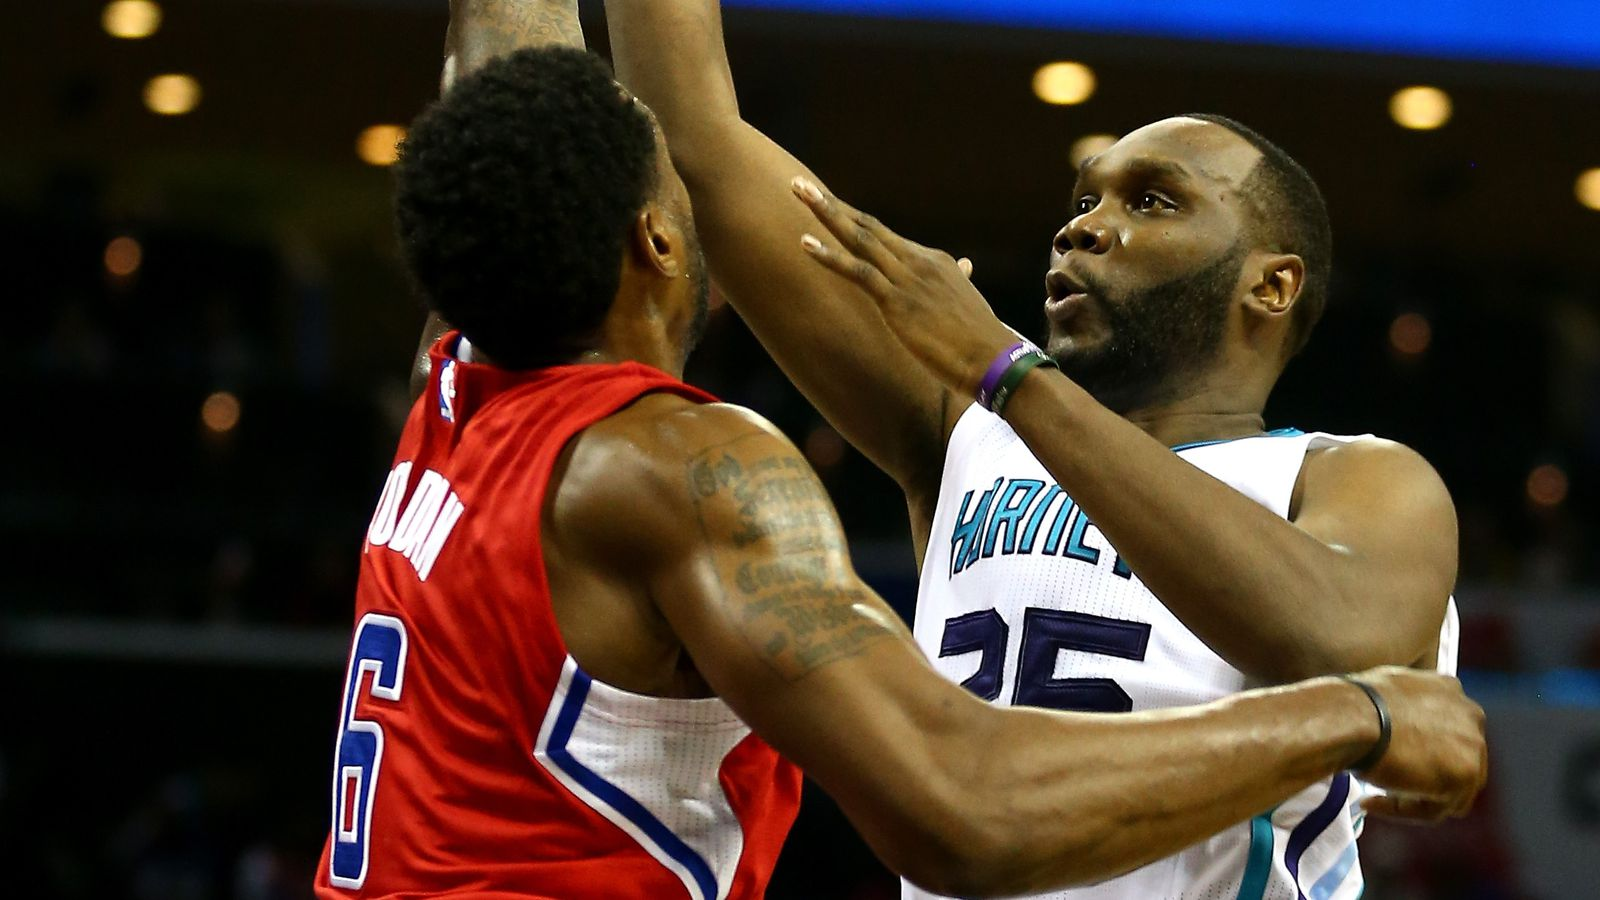 NBA Global Games: Charlotte Hornets vs. Los Angeles Clippers Game 1 Preview